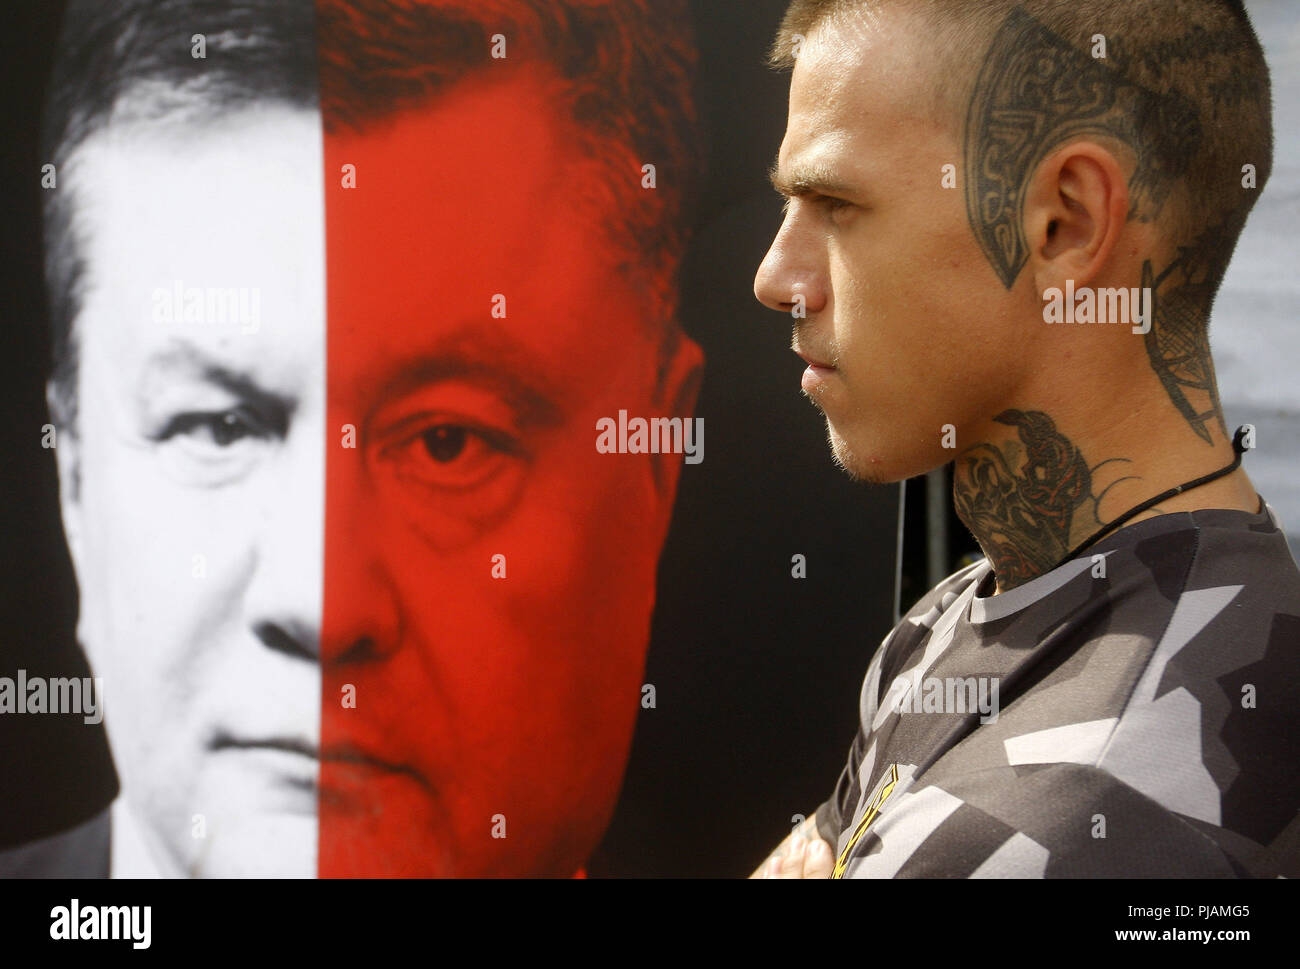 Kiev, Ukraine. 6th Sep, 2018. An Ukrainian activist stands next to a banner with an image which compiled from portraits of the former President Viktor Yanukovich and the current Ukrainian President Petro Poroshenko, during a rally of activists from different political parties with demand of electoral reform in front of the Ukrainain Parliament in Kiev, Ukraine, on 6 September 2018. Credit: ZUMA Press, Inc./Alamy Live News - Stock Image